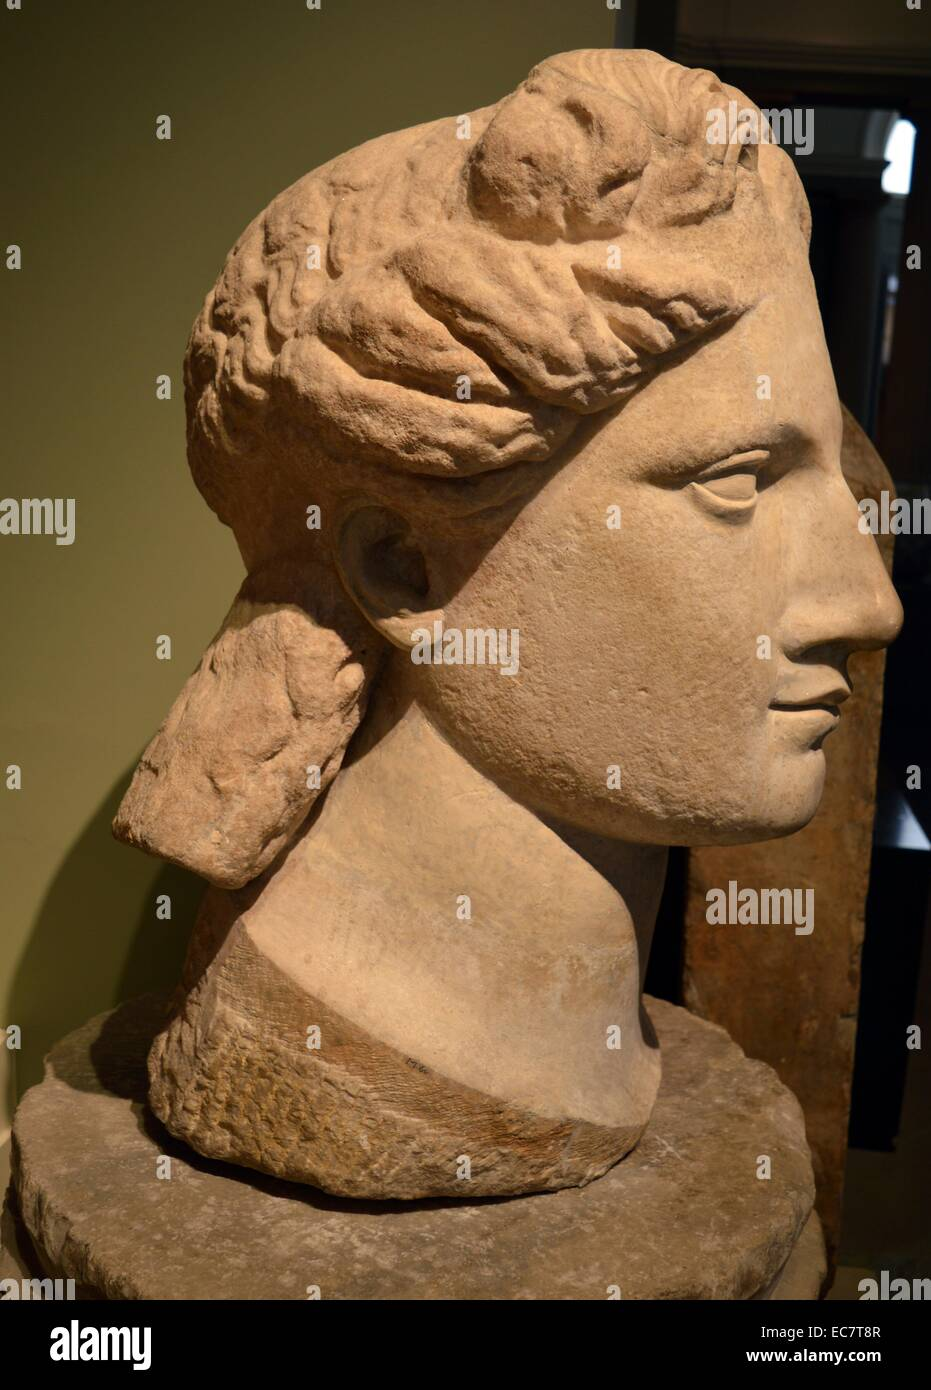 Colossal marble head of Apollo. - Stock Image